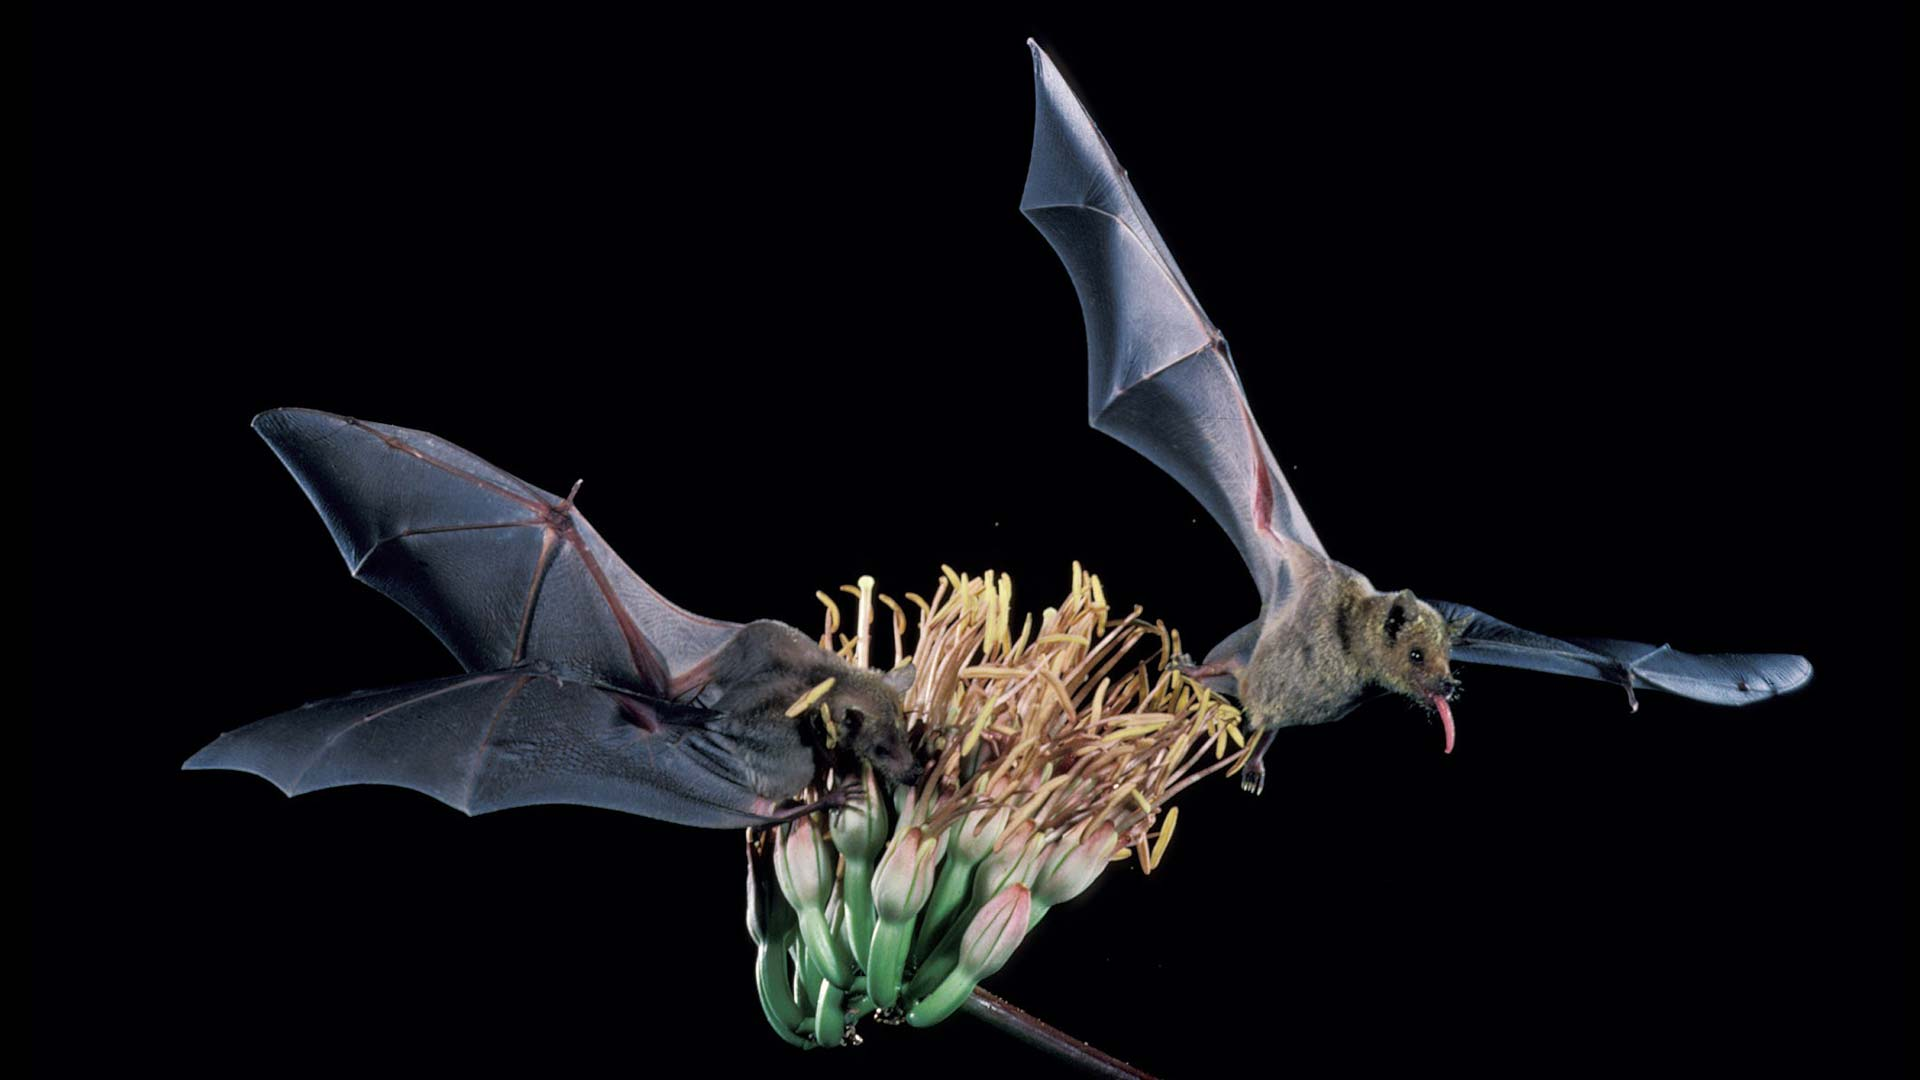 The lesser long-nosed bat.